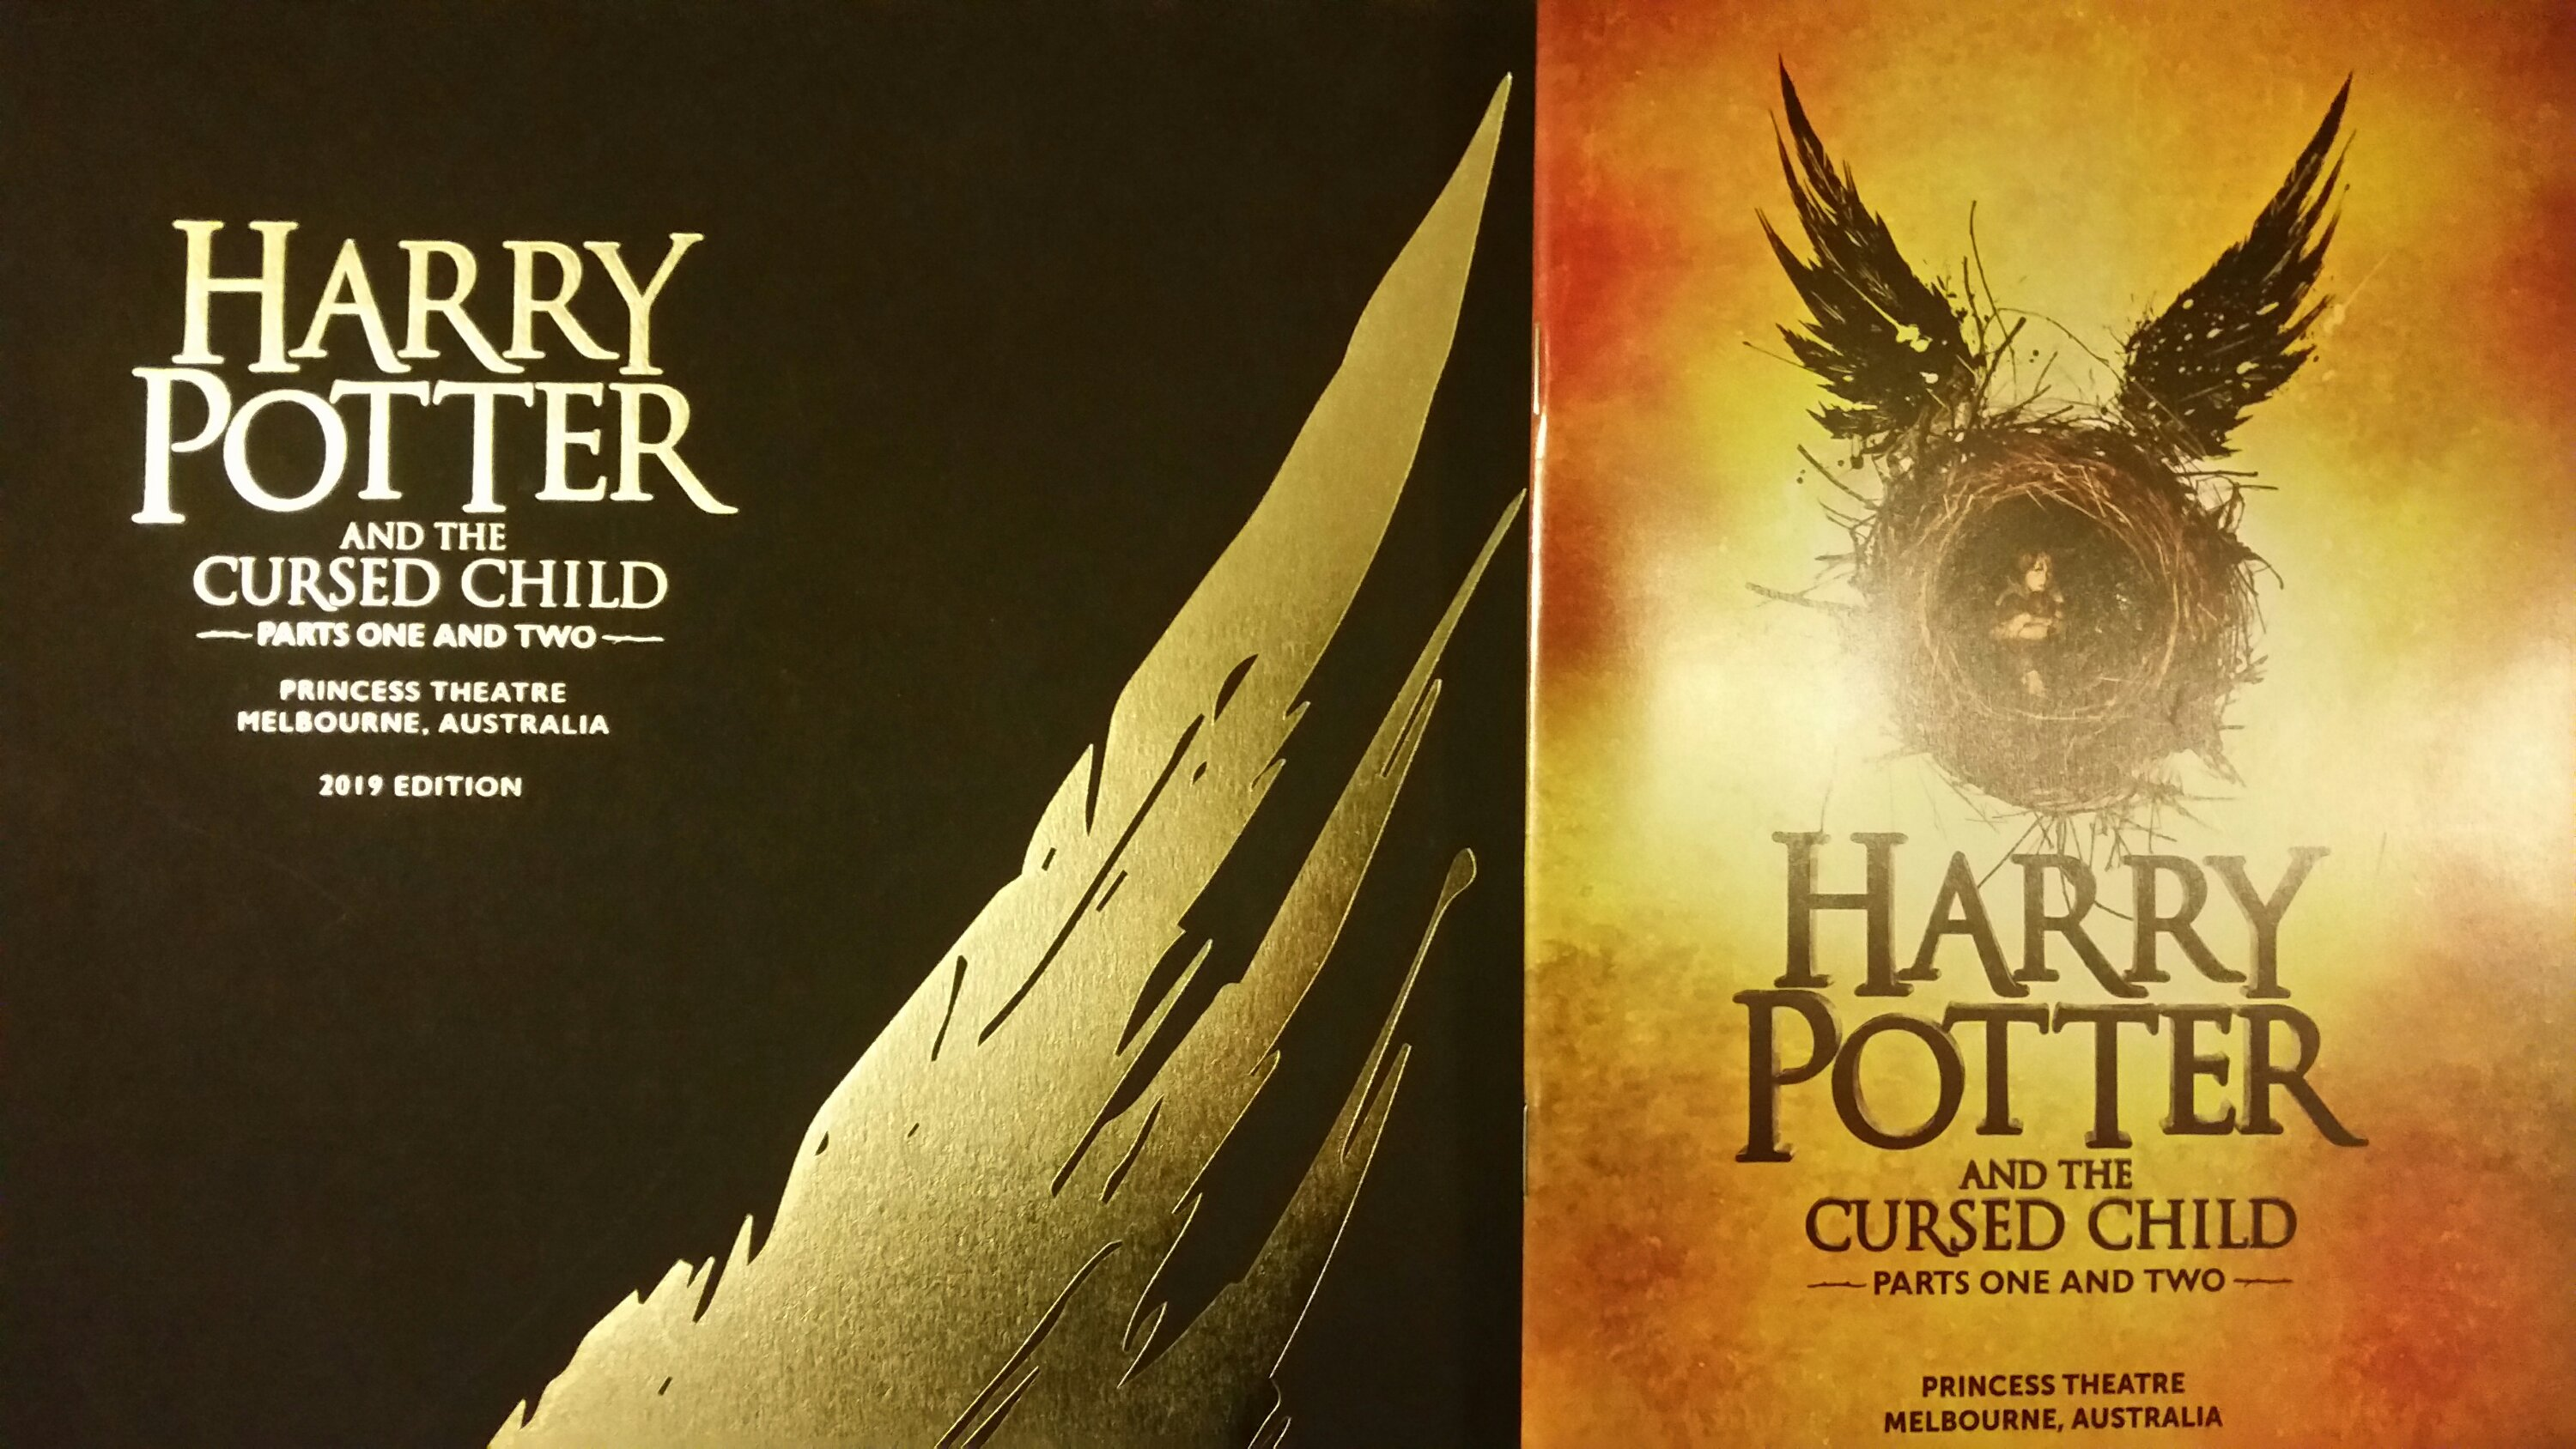 Harry Potter and the Cursed Child, Princess Theatre